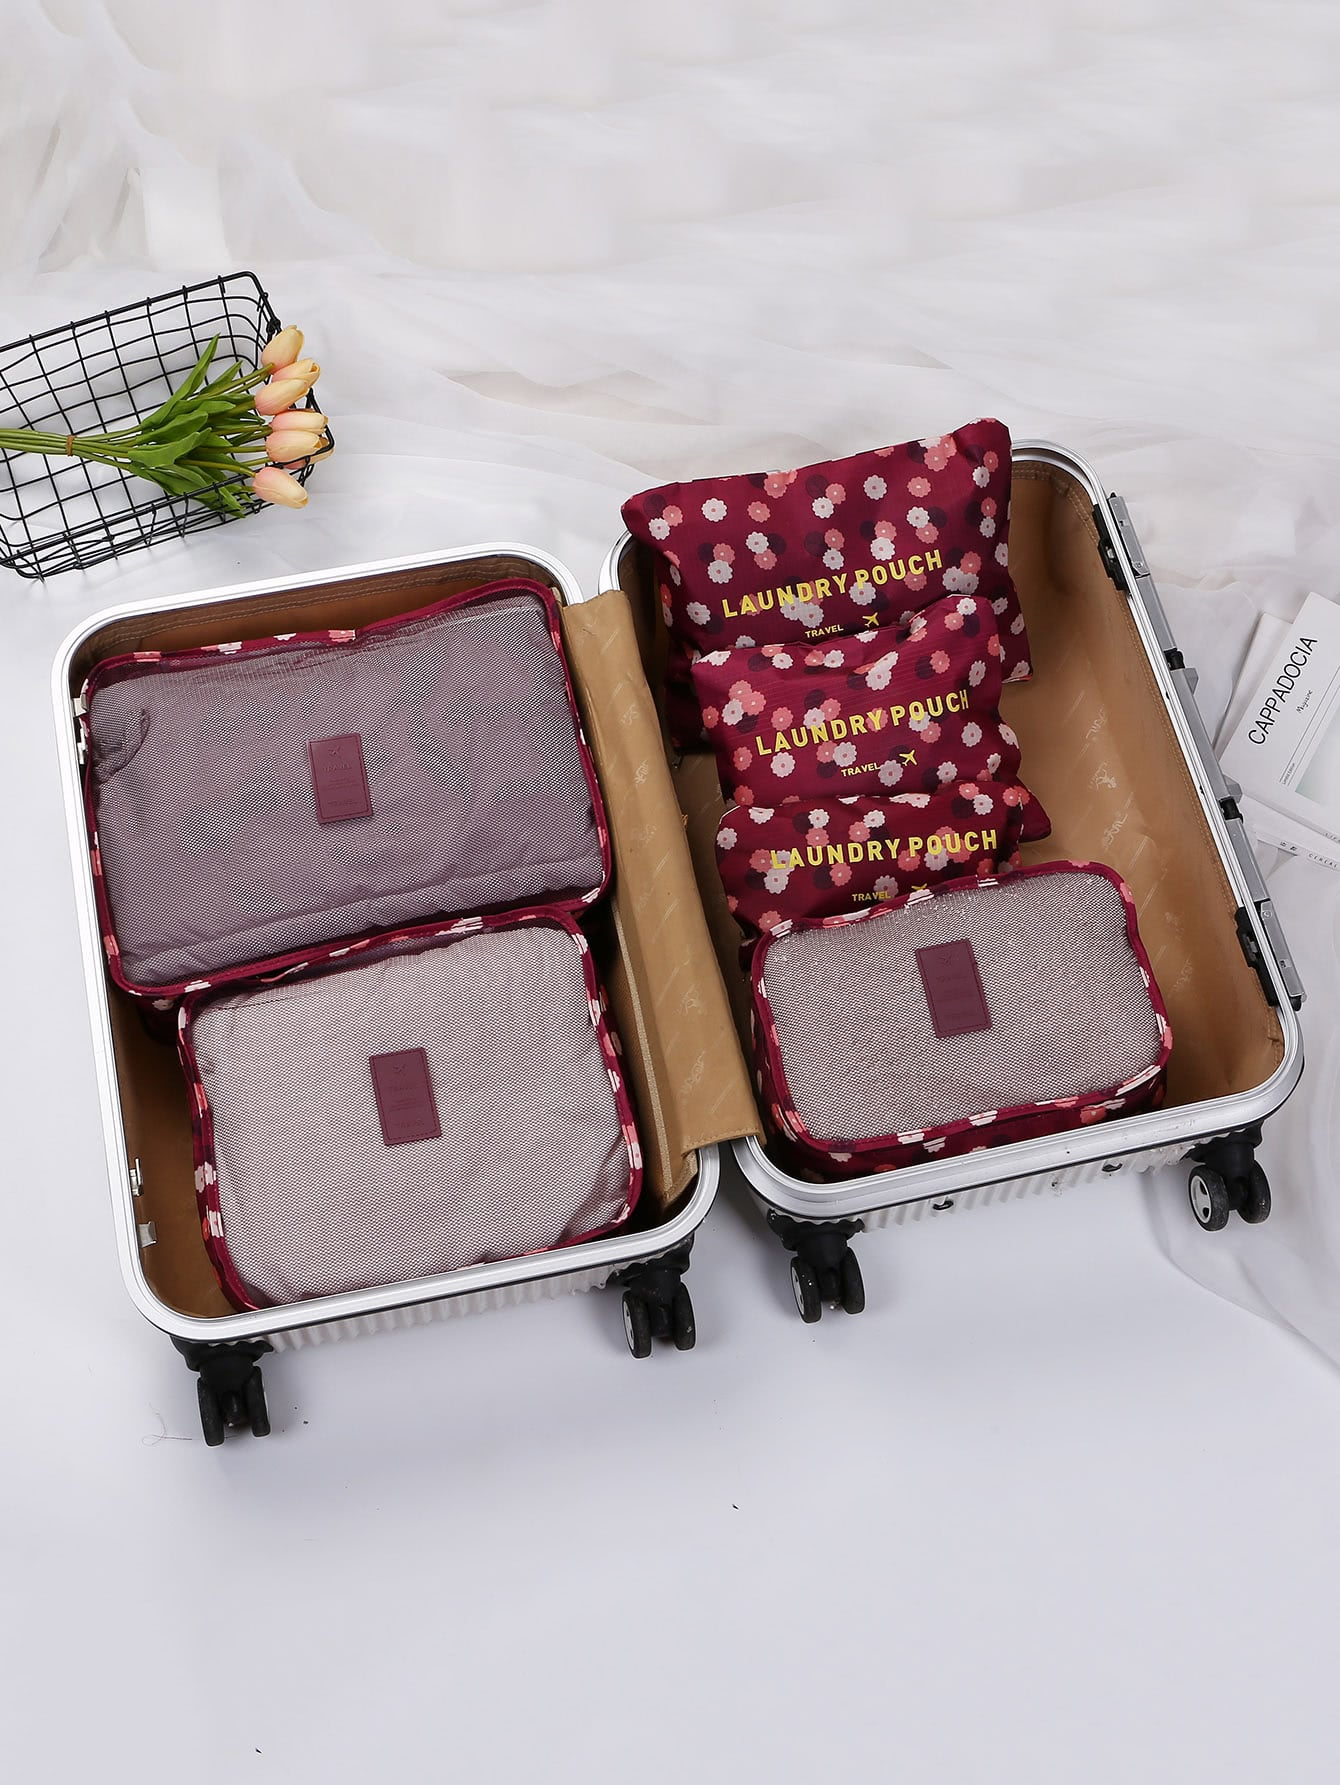 6 Pcs Travel Bags Set Floral Storage Bag